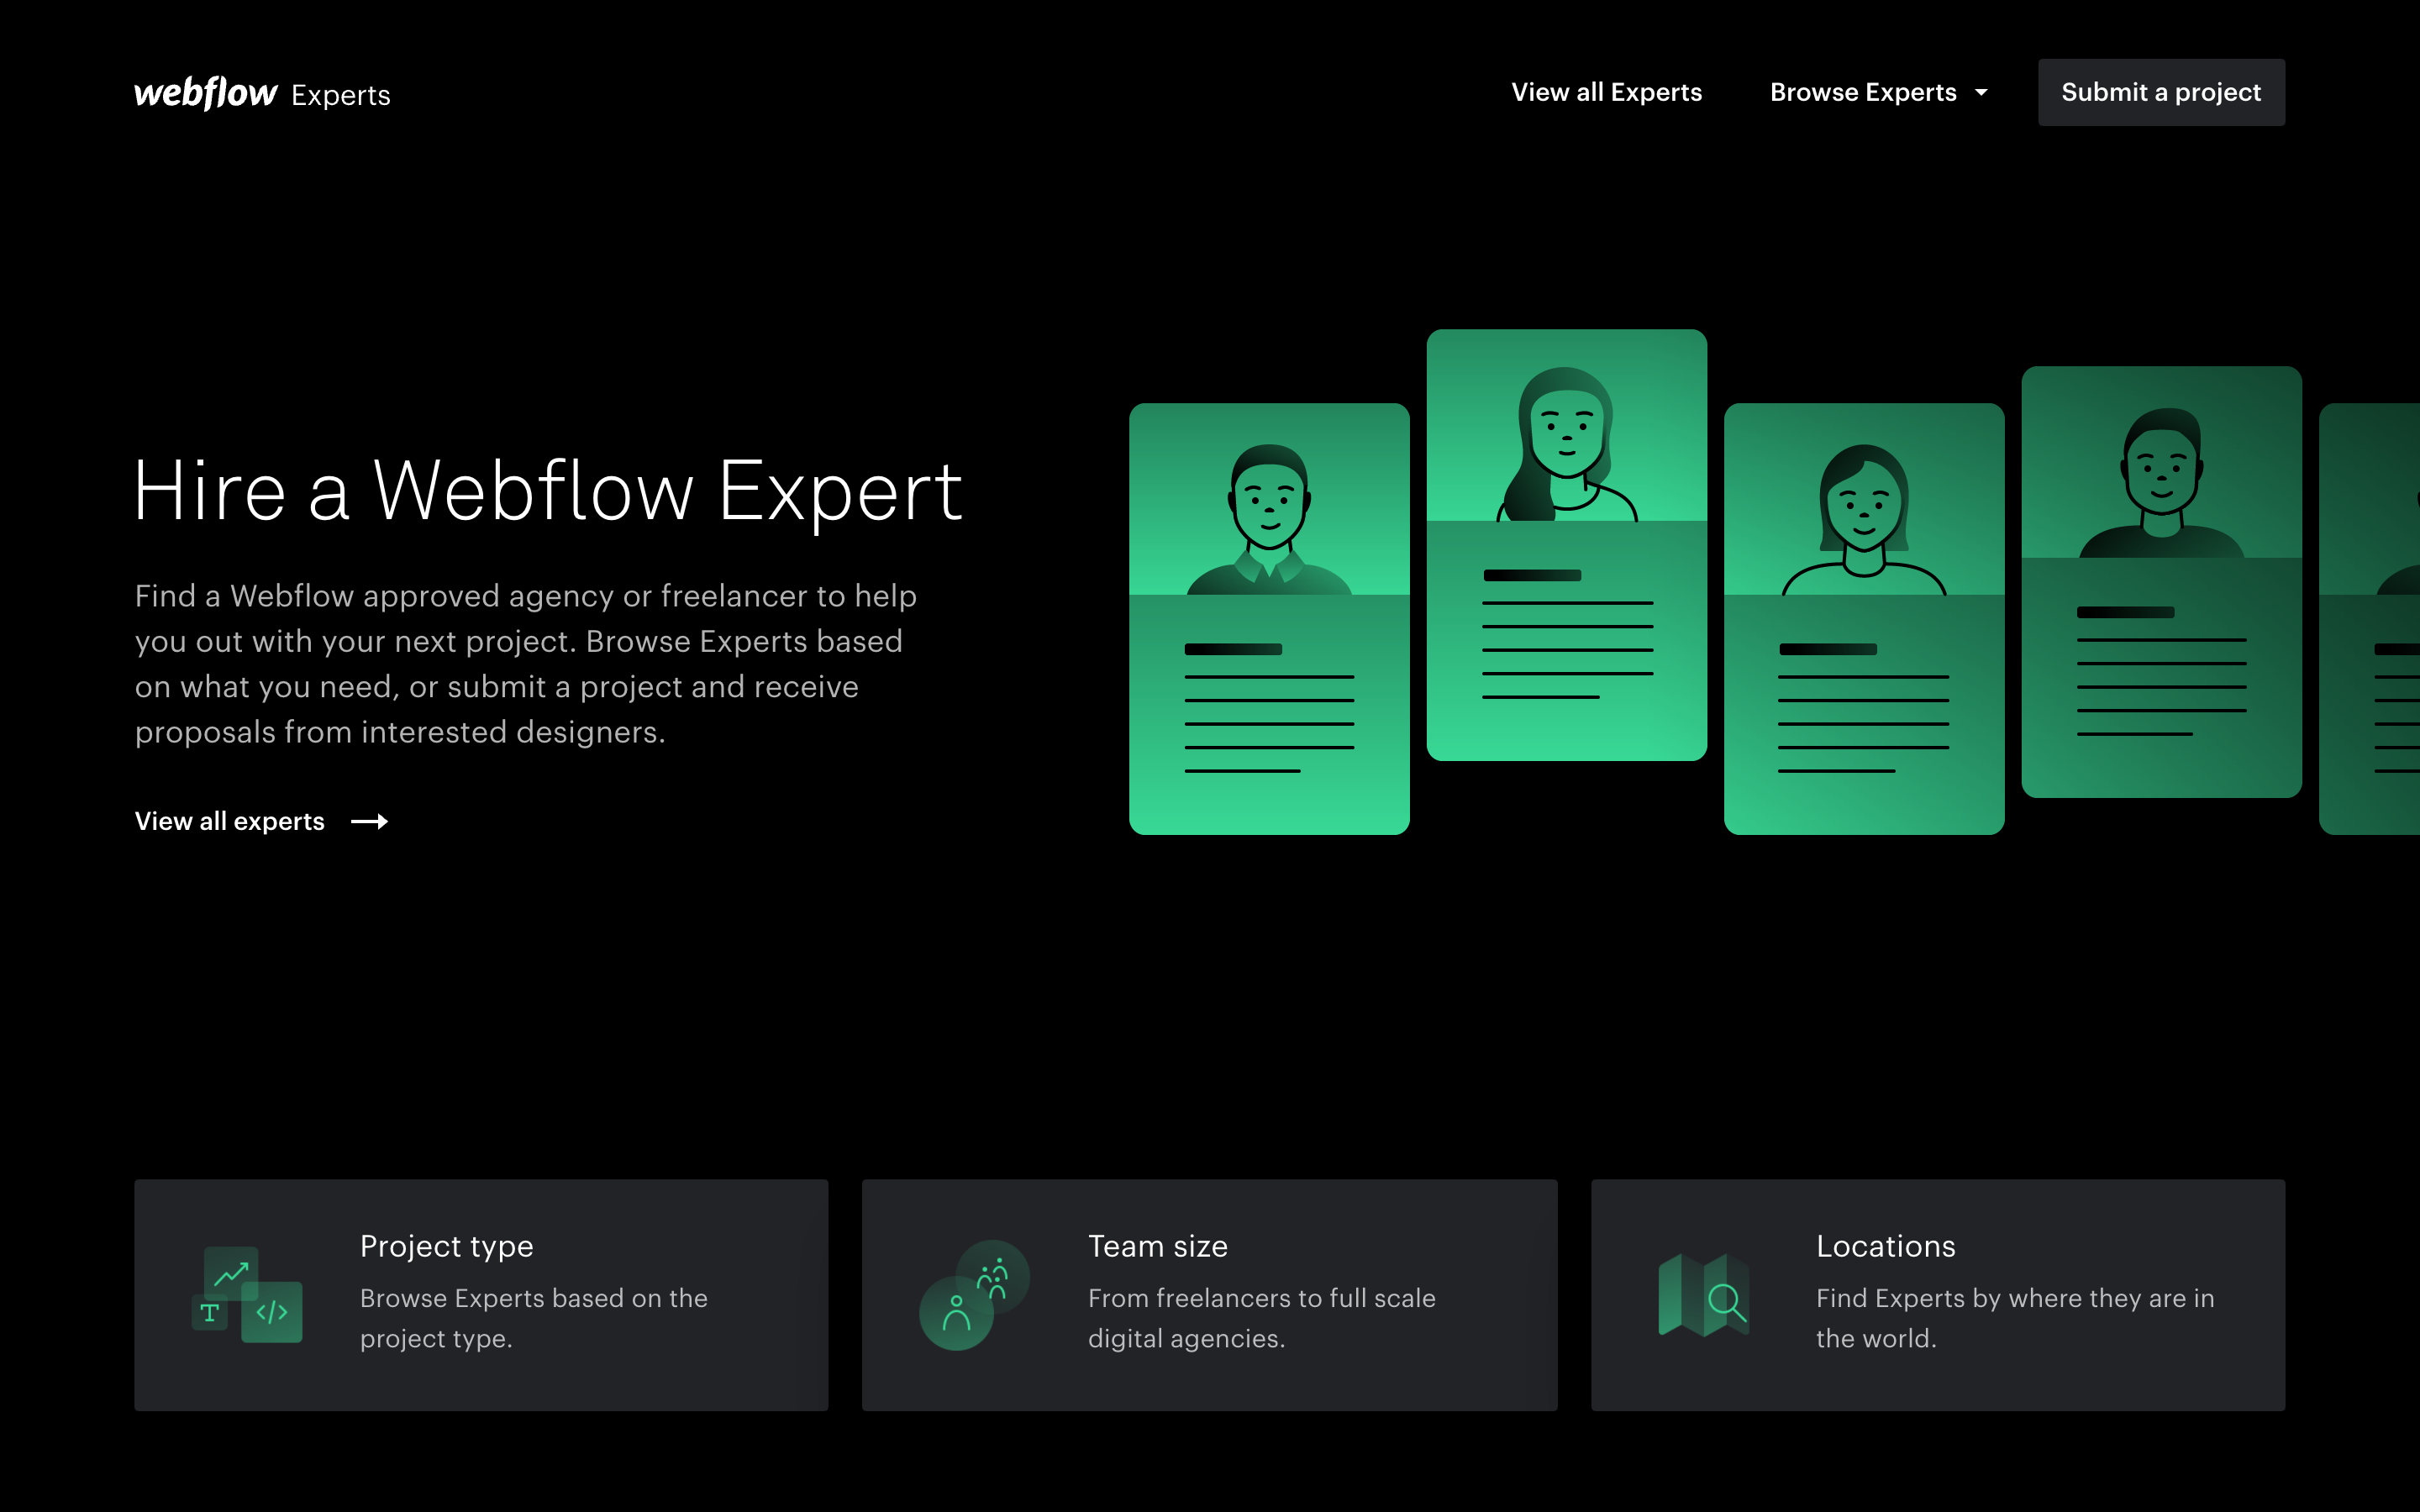 Webflow Experts home page.